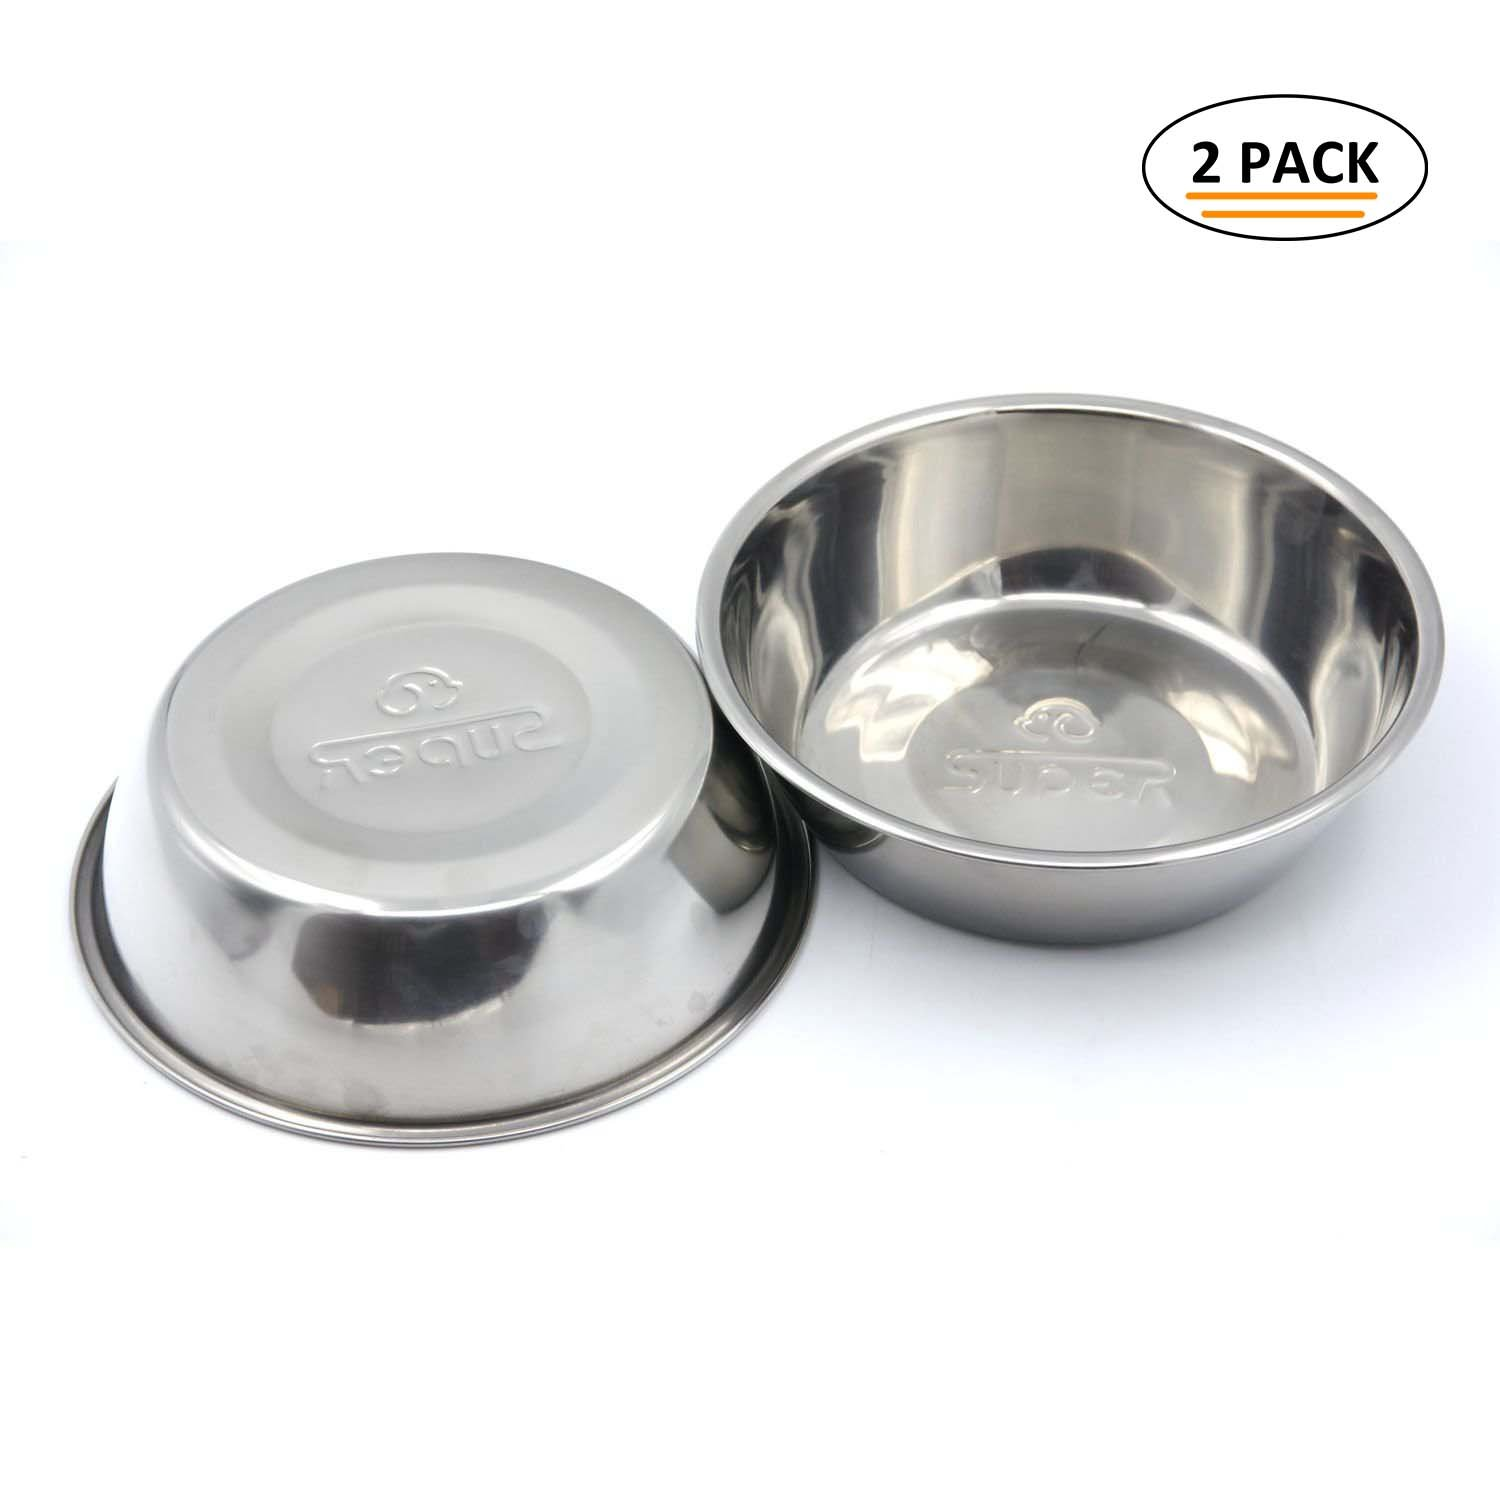 Super Design Stainless Steel Pet Bowl Package for Dogs and Cats, 1 Pack of 2, M